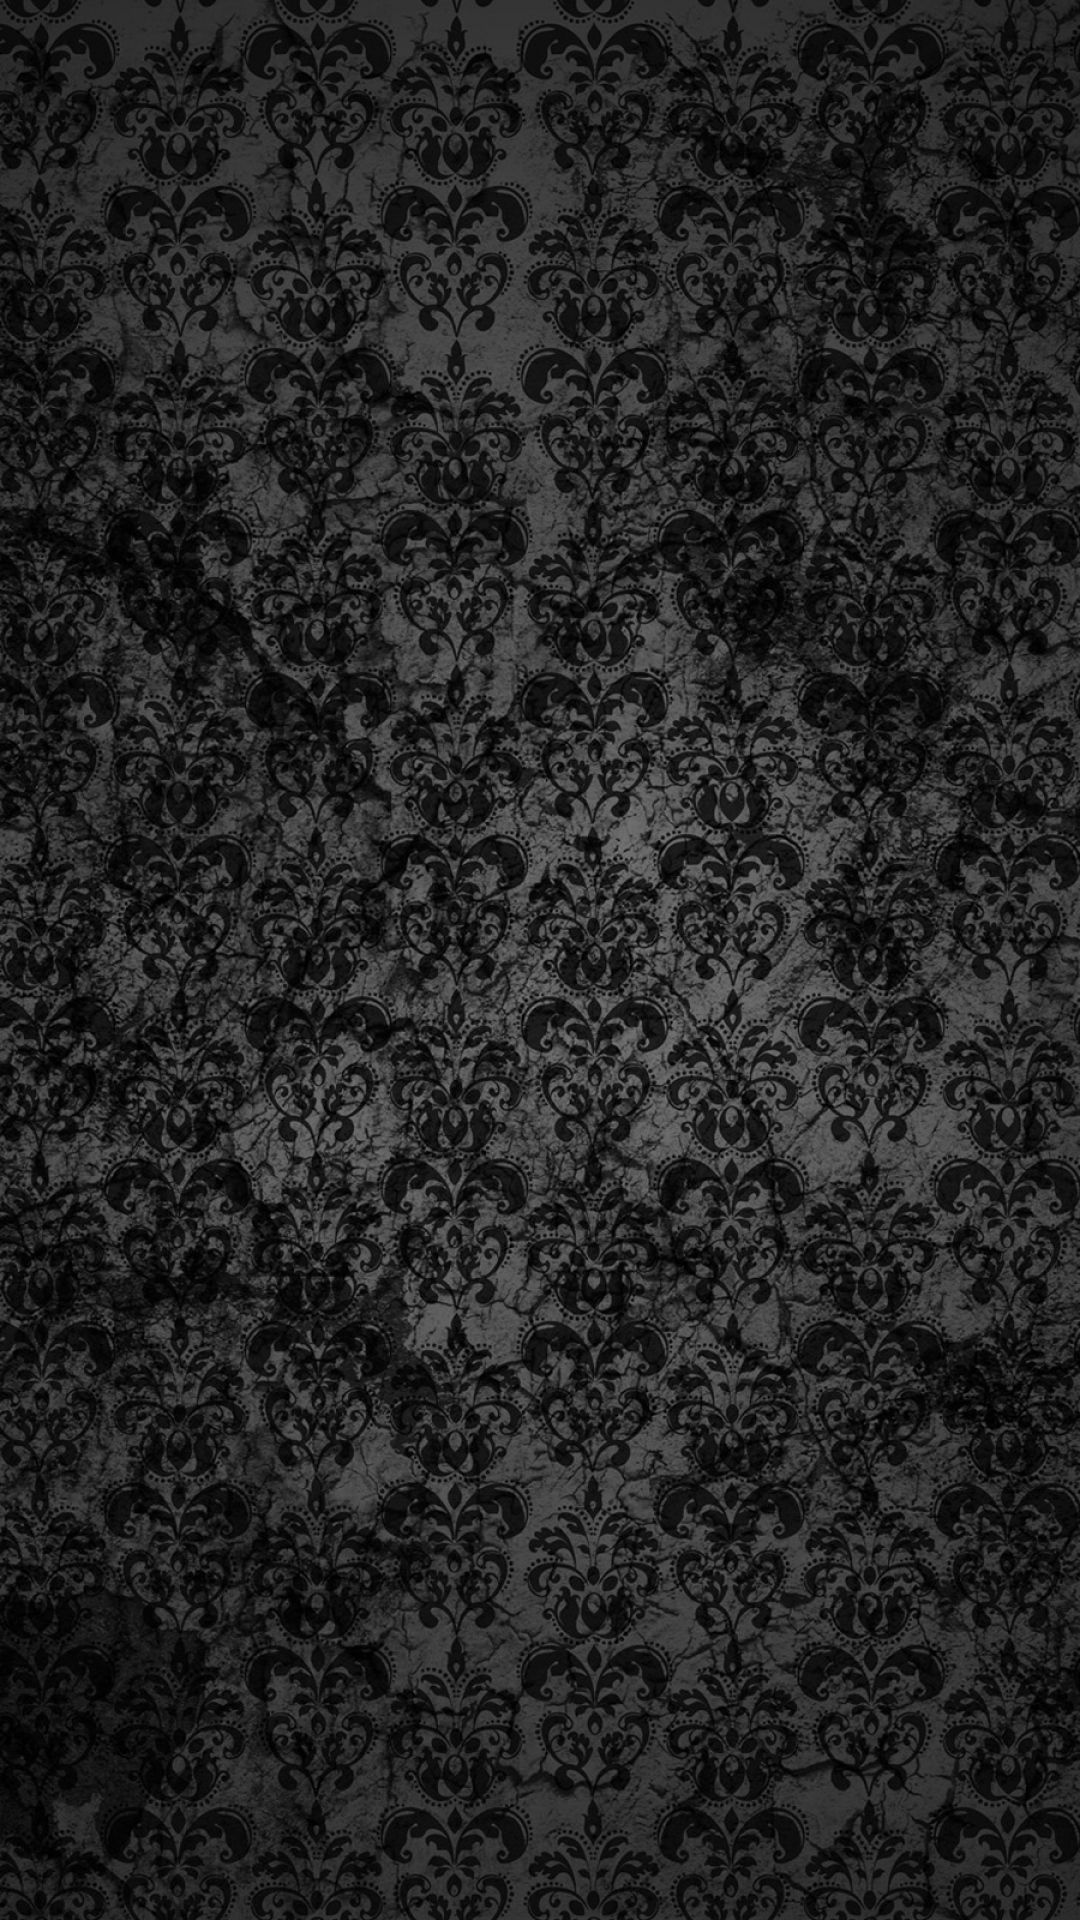 Black And Gray Picture Lace Wallpaper Black Wallpaper Cow Print Wallpaper